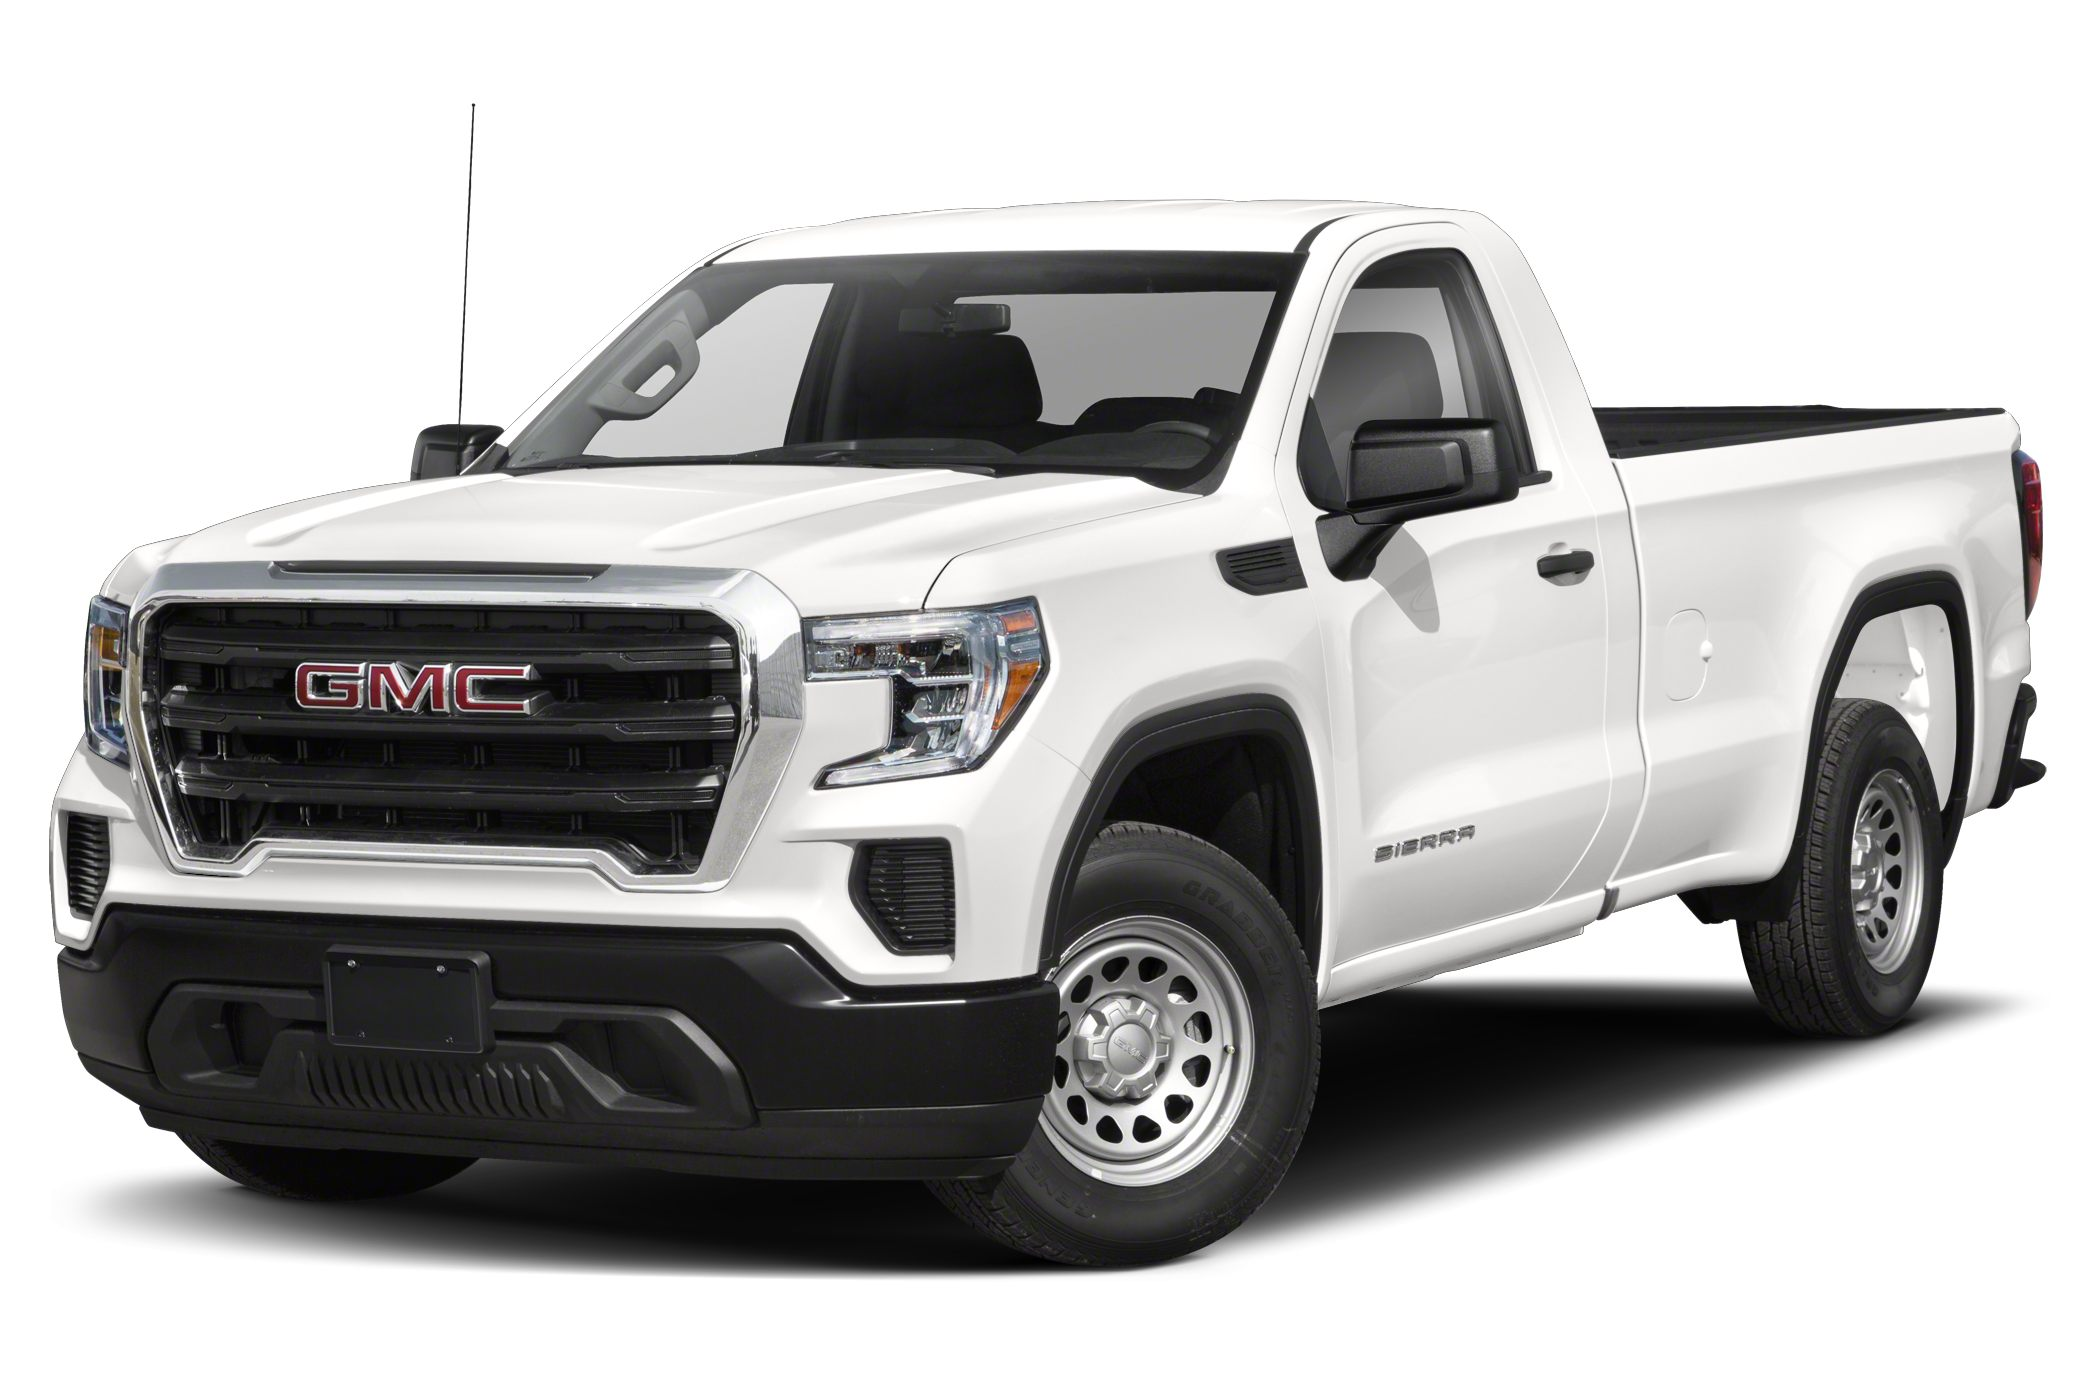 2019 Gmc Sierra 1500 Safety Features